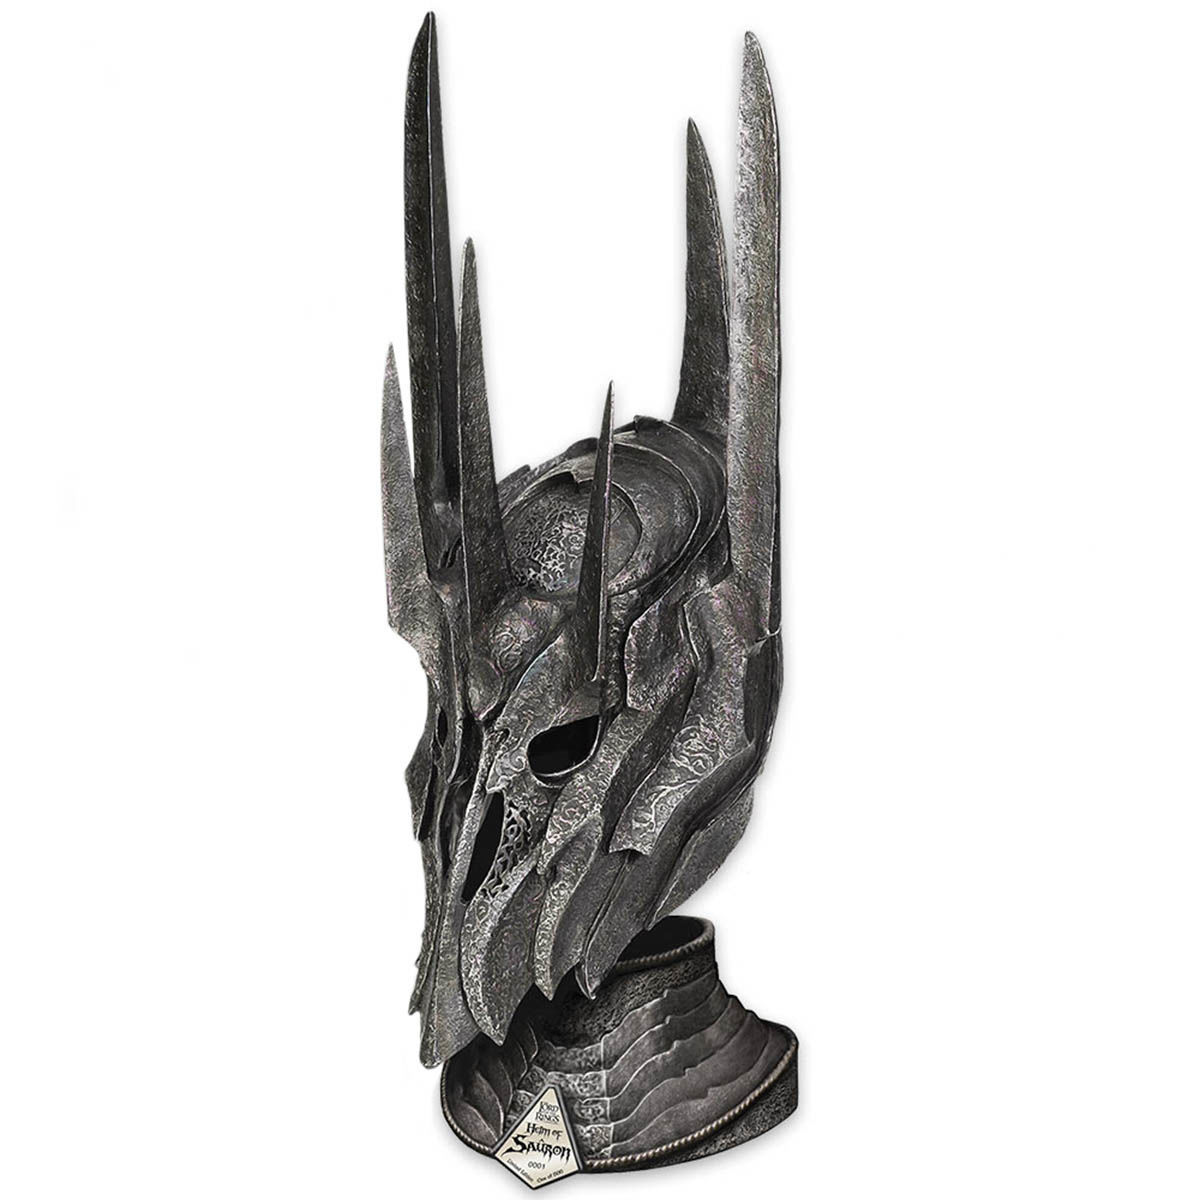 Licensed Lord of the Rings Helm of Sauron with Stand from United Cutlery